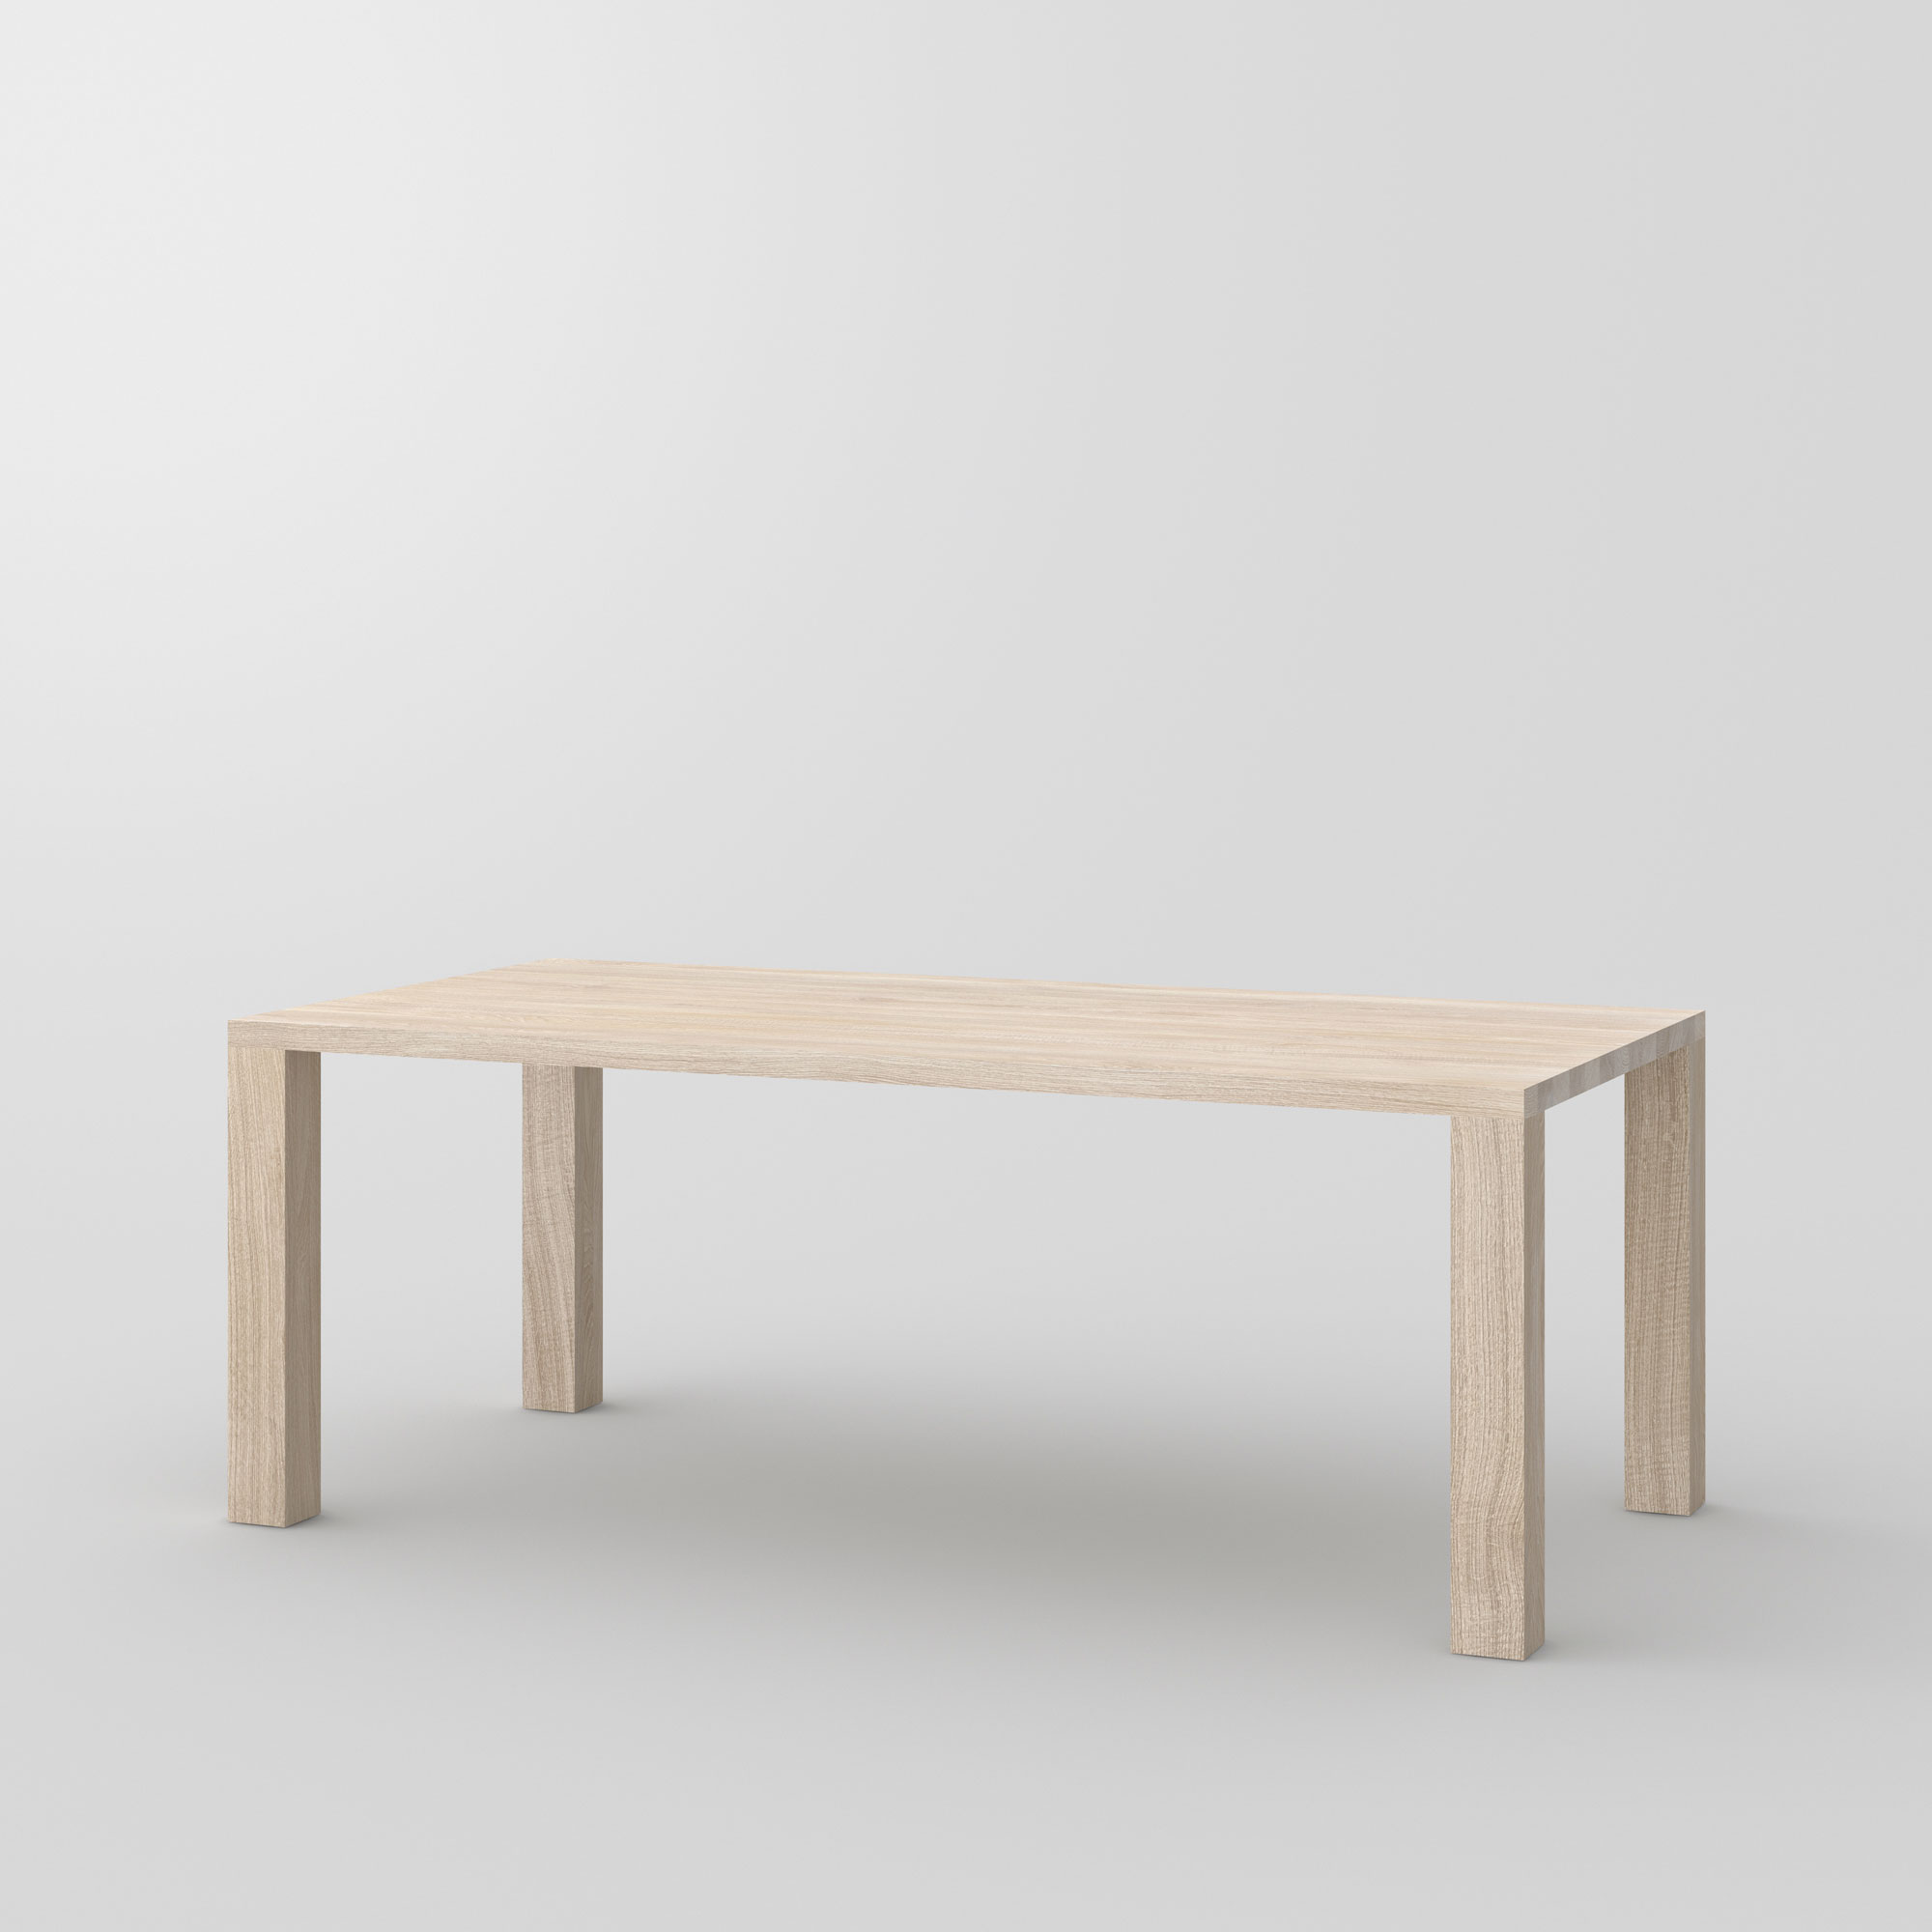 Frameless Solid Wood Table IUSTUS cam1 custom made in solid wood by vitamin design